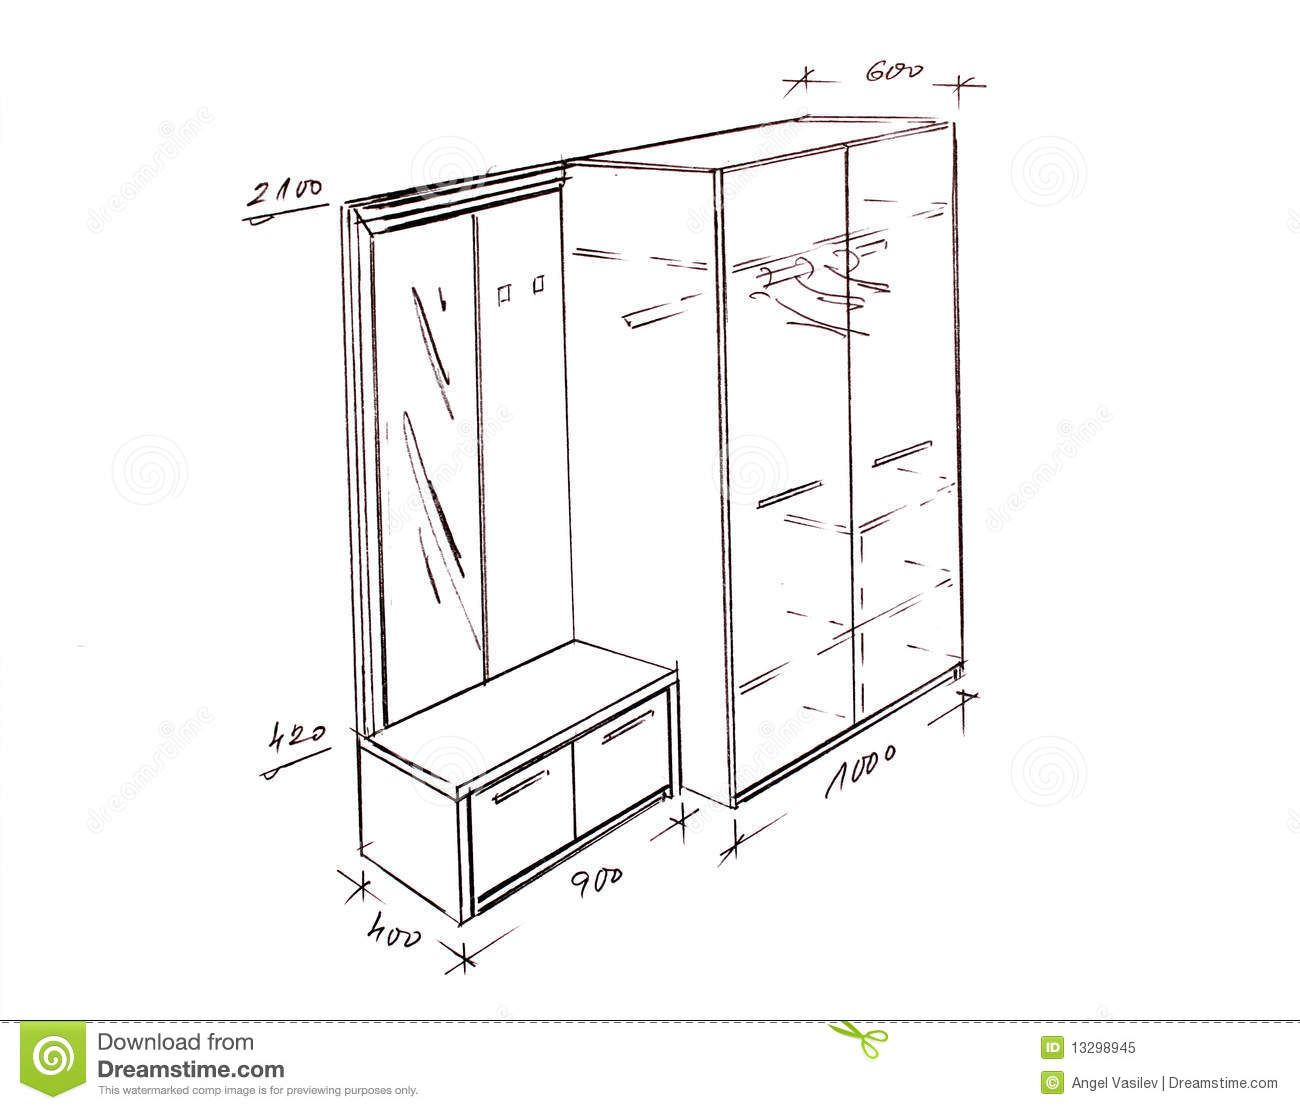 Furniture design drawings furniture design drawings for Drawing room furniture